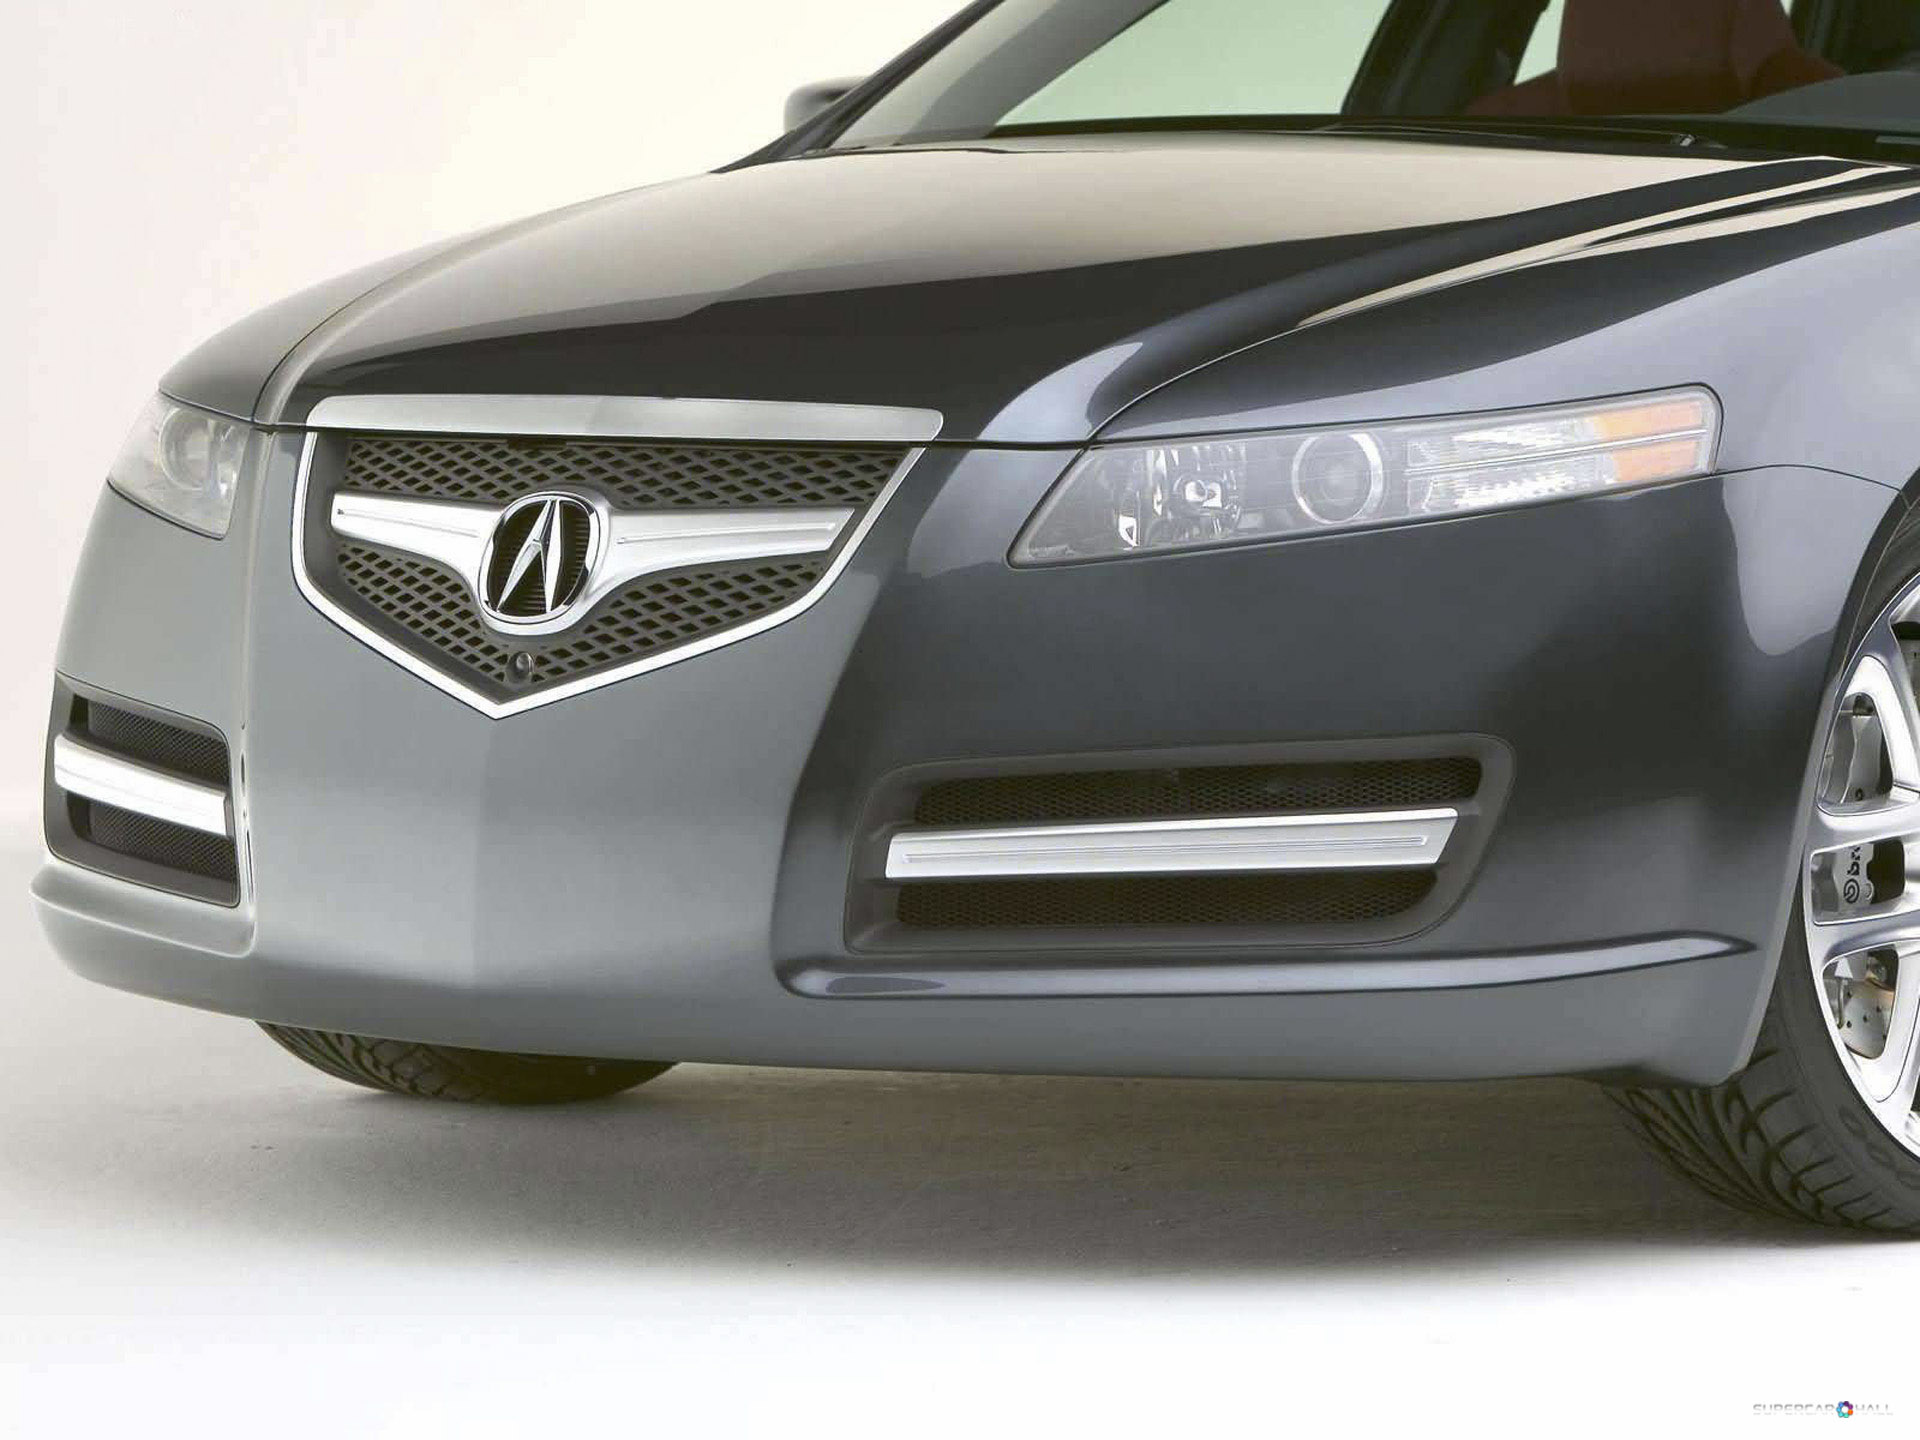 2010 Acura RL ASPEC Concept photo - 1